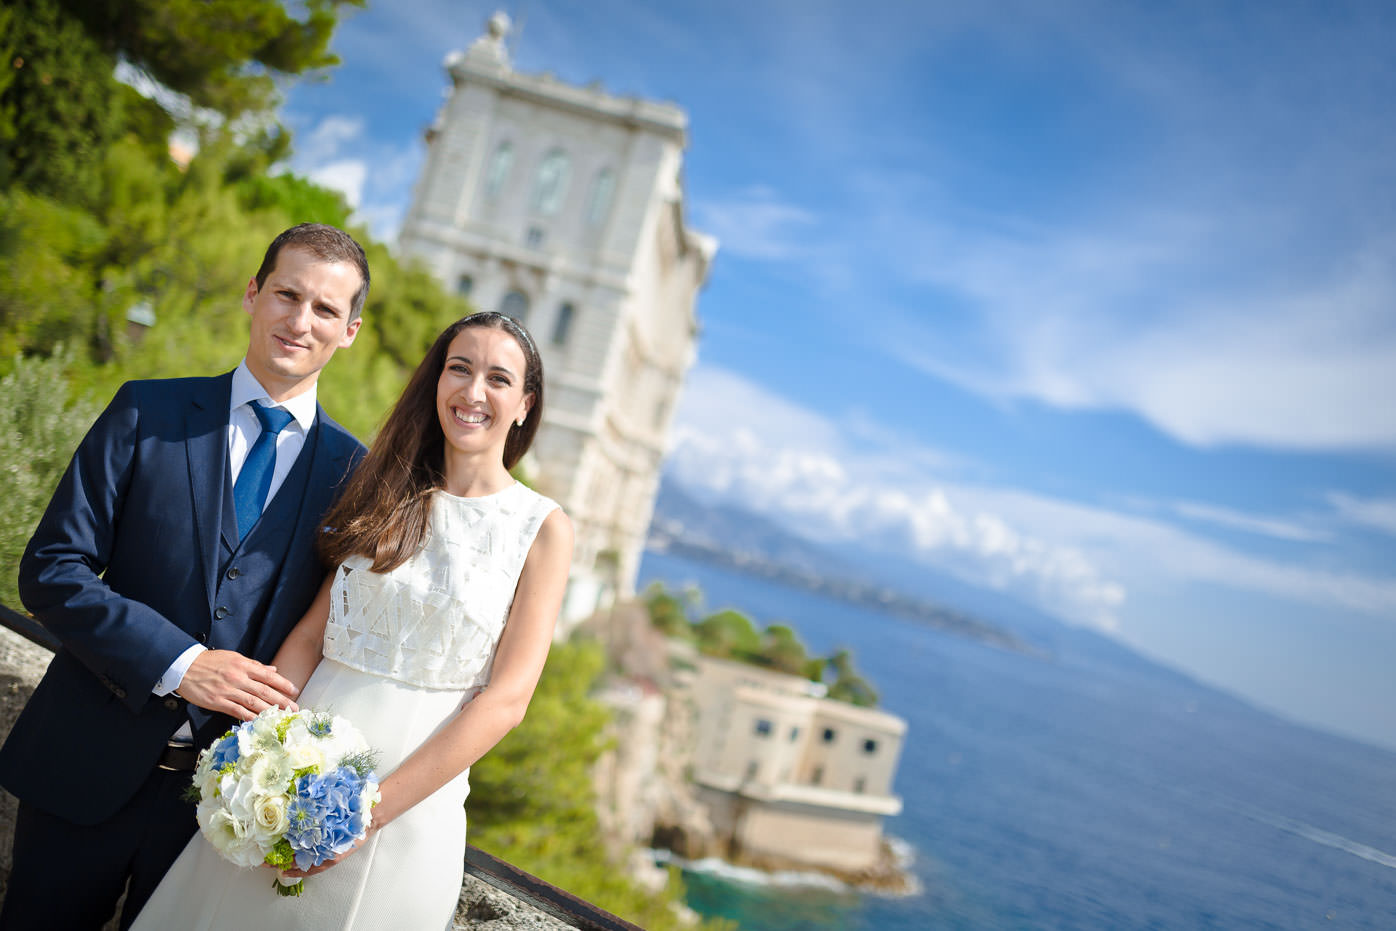 Photographe_Monaco_Monte_Carlo_Mariage_Wedding_16